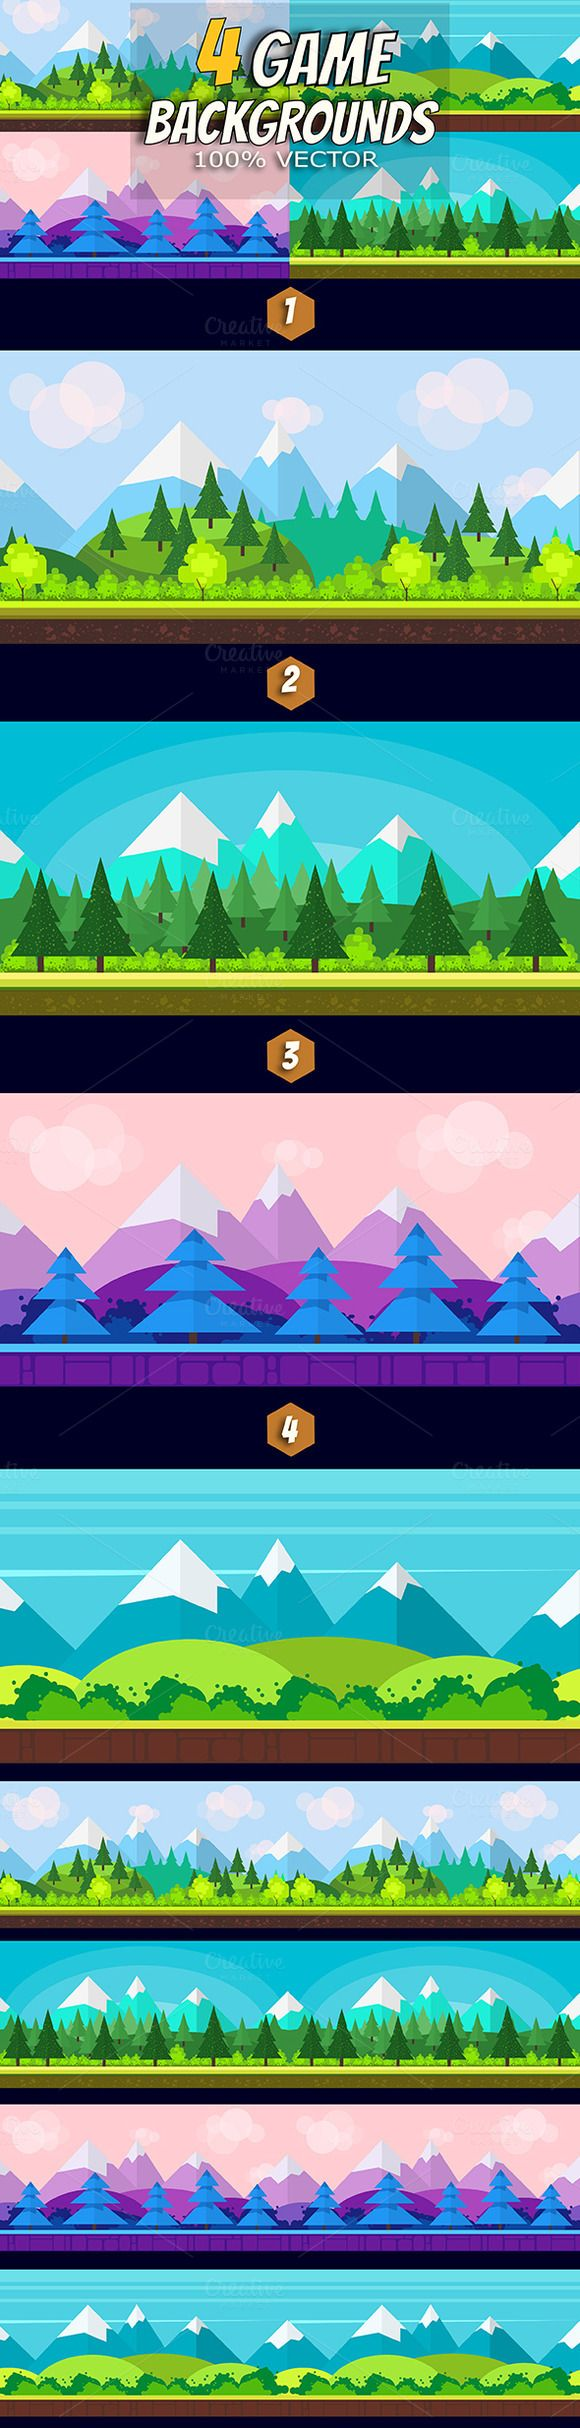 4 Flat Game Parallax Backgrounds by VitaliyVill on @creativemarket